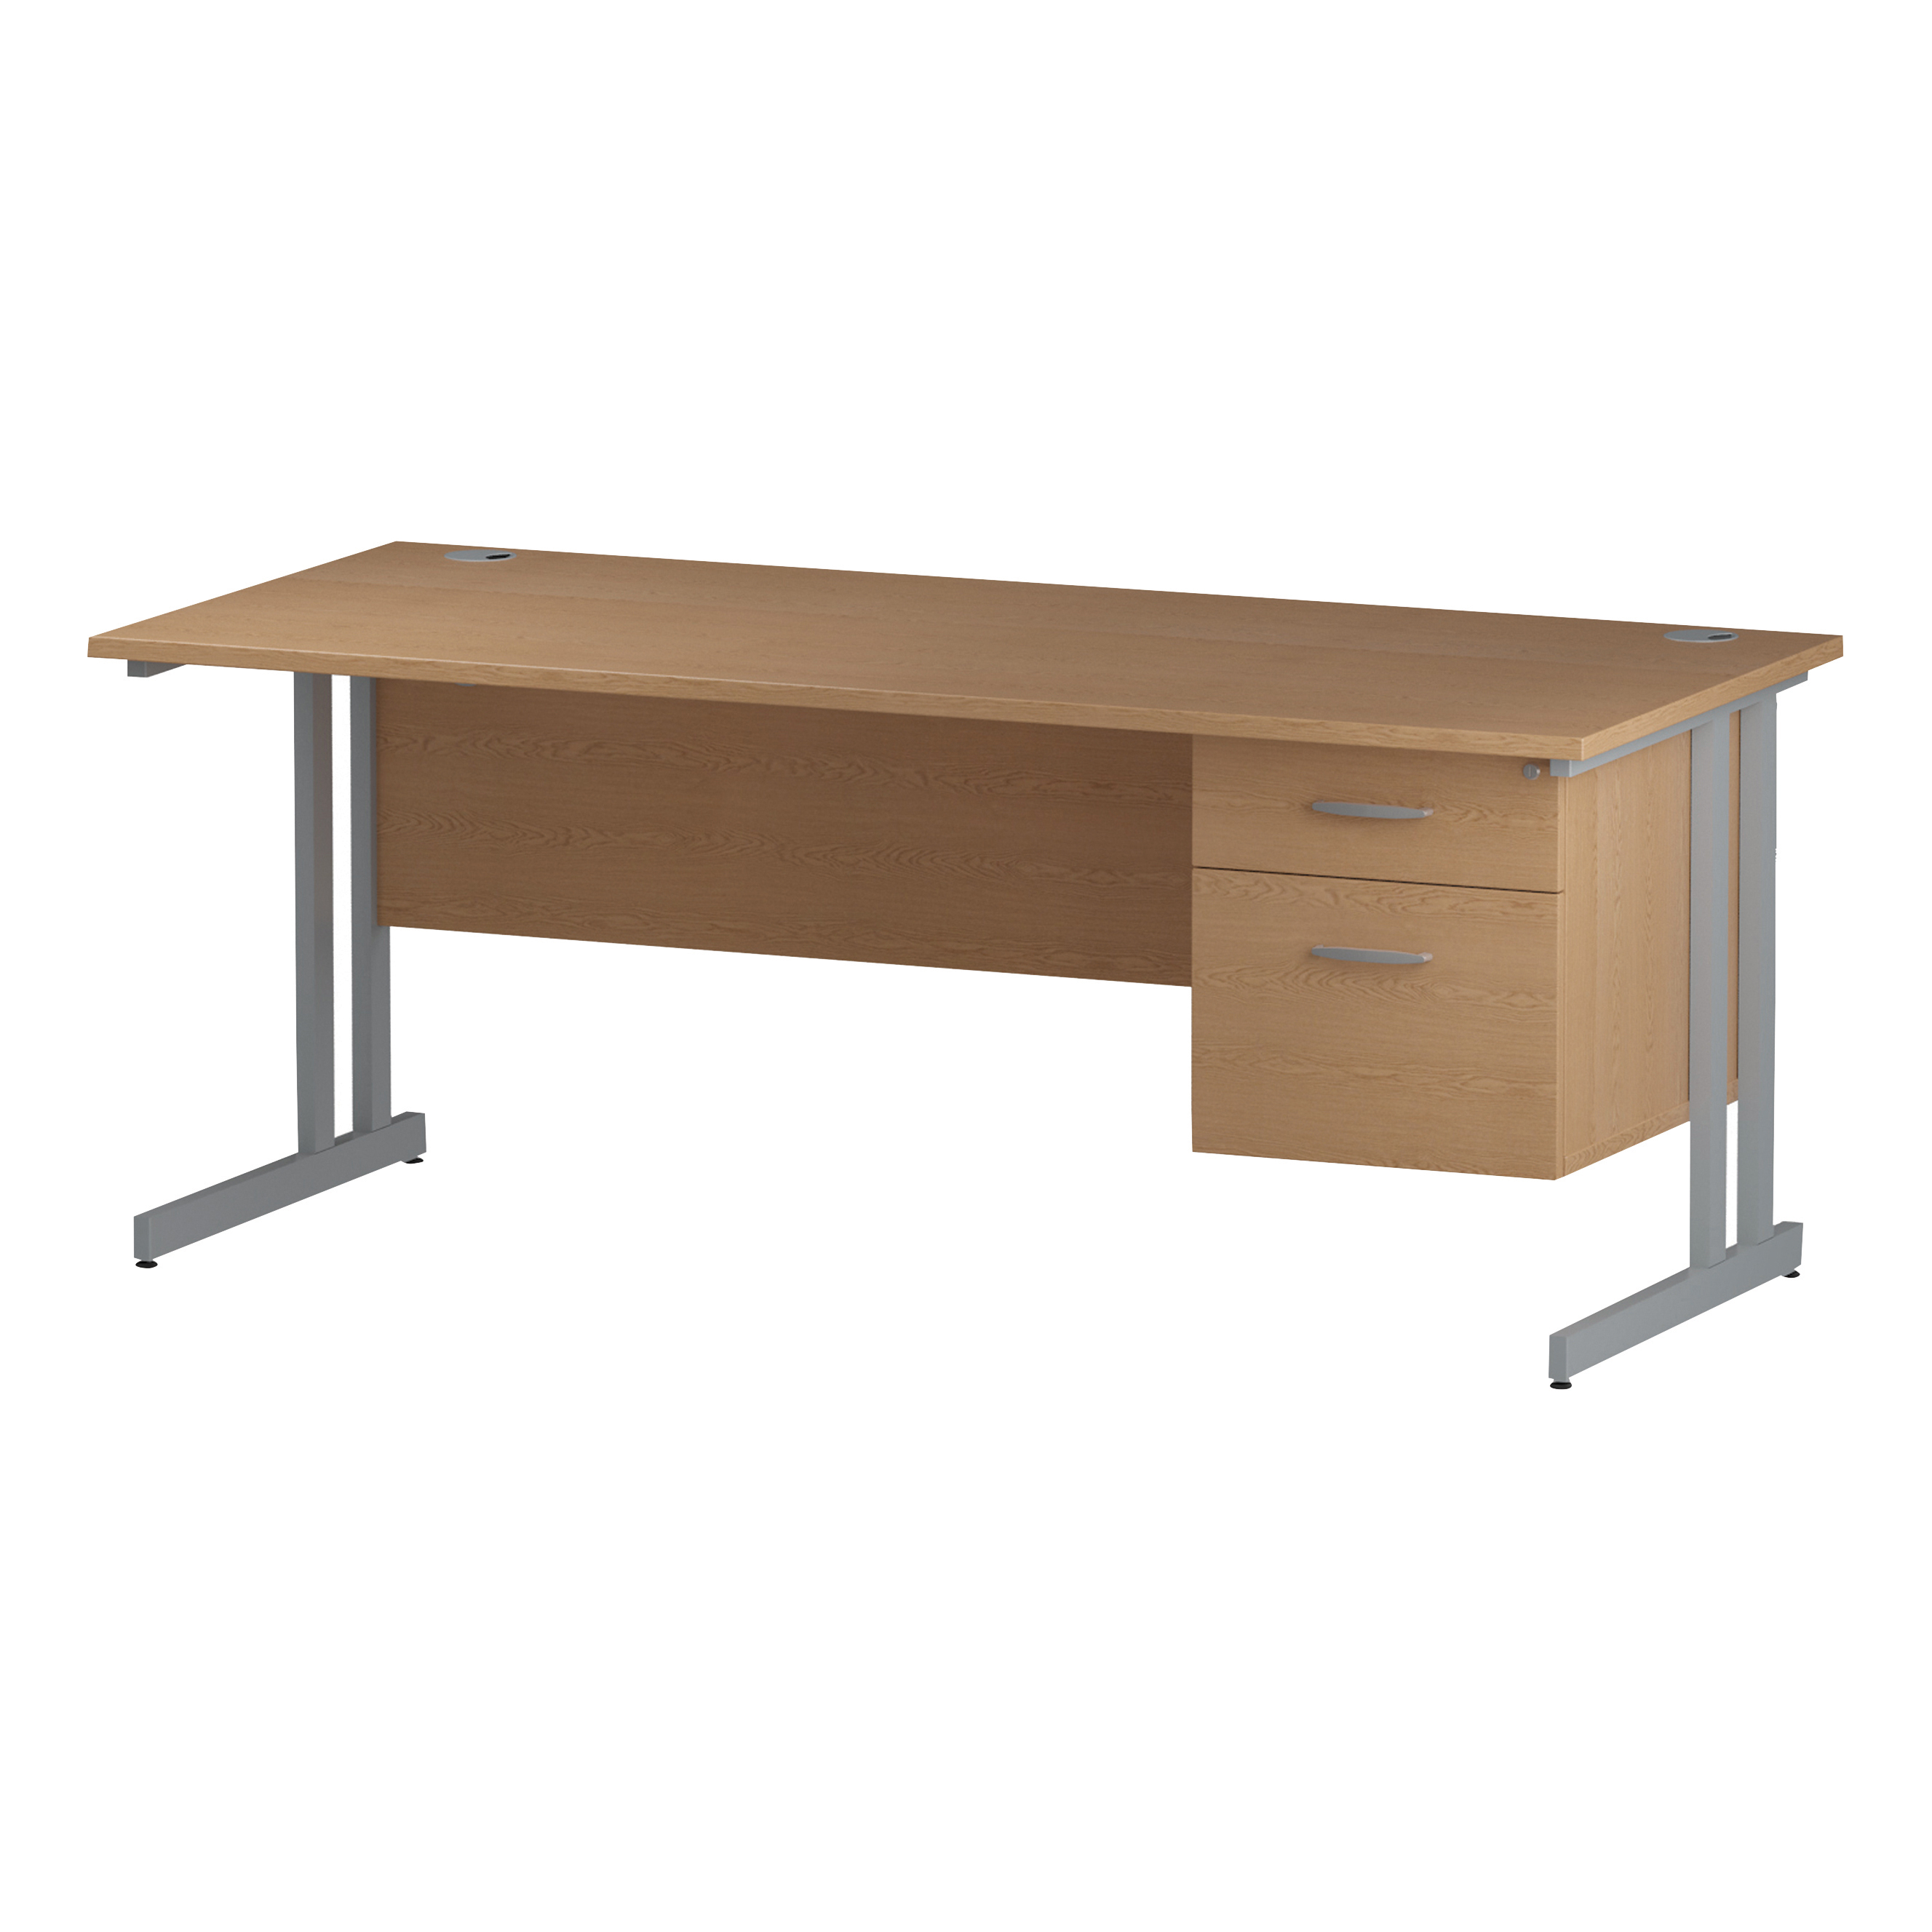 Trexus Rectangular Desk Silver Cantilever Leg 1800x800mm Fixed Pedestal 2 Drawers Oak Ref I002660